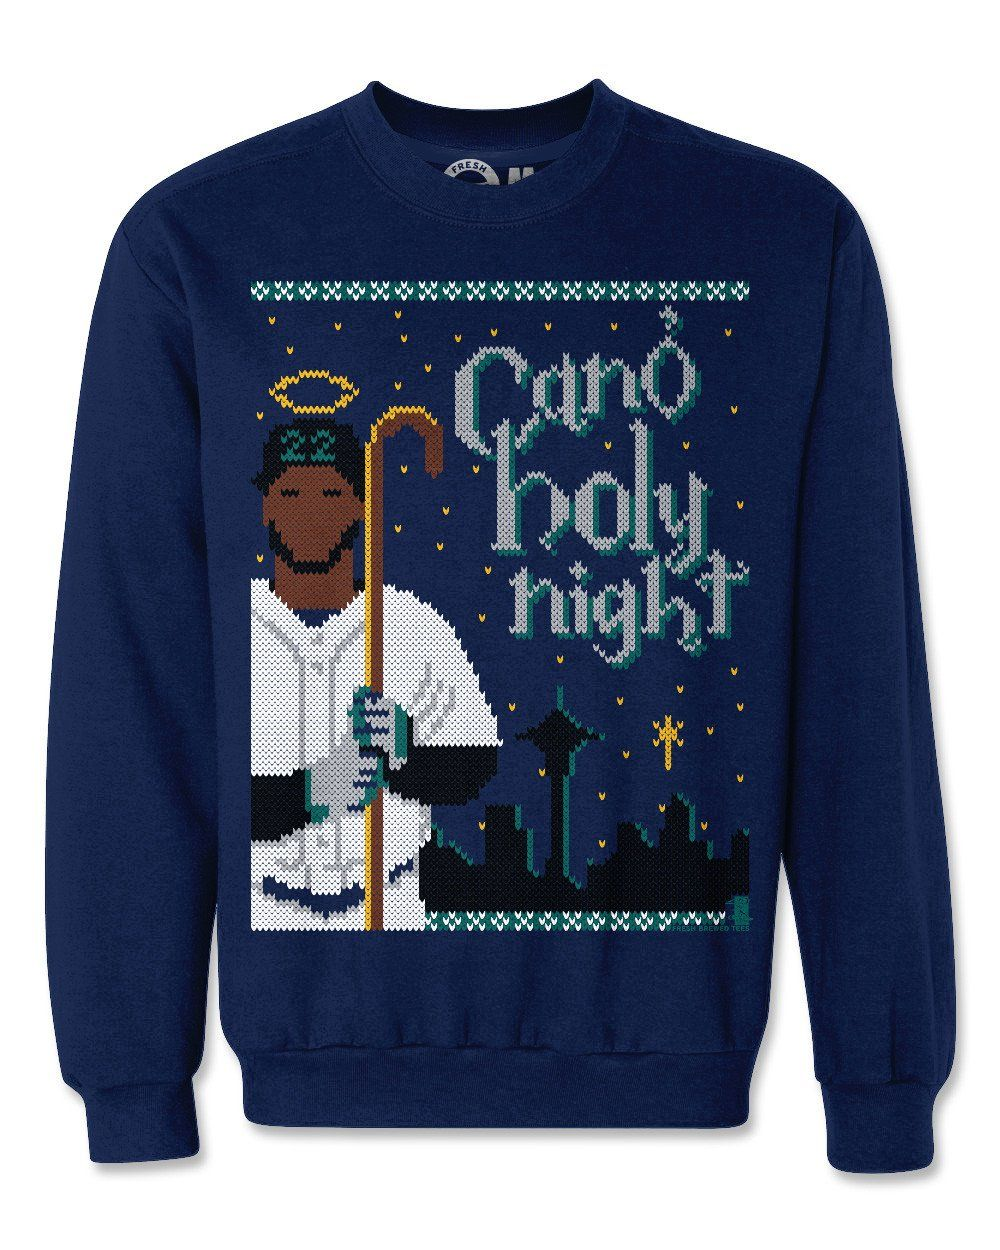 8fb4bf48 Robinson Cano Holy Night Ugly Christmas Sweatshirt | Products ...